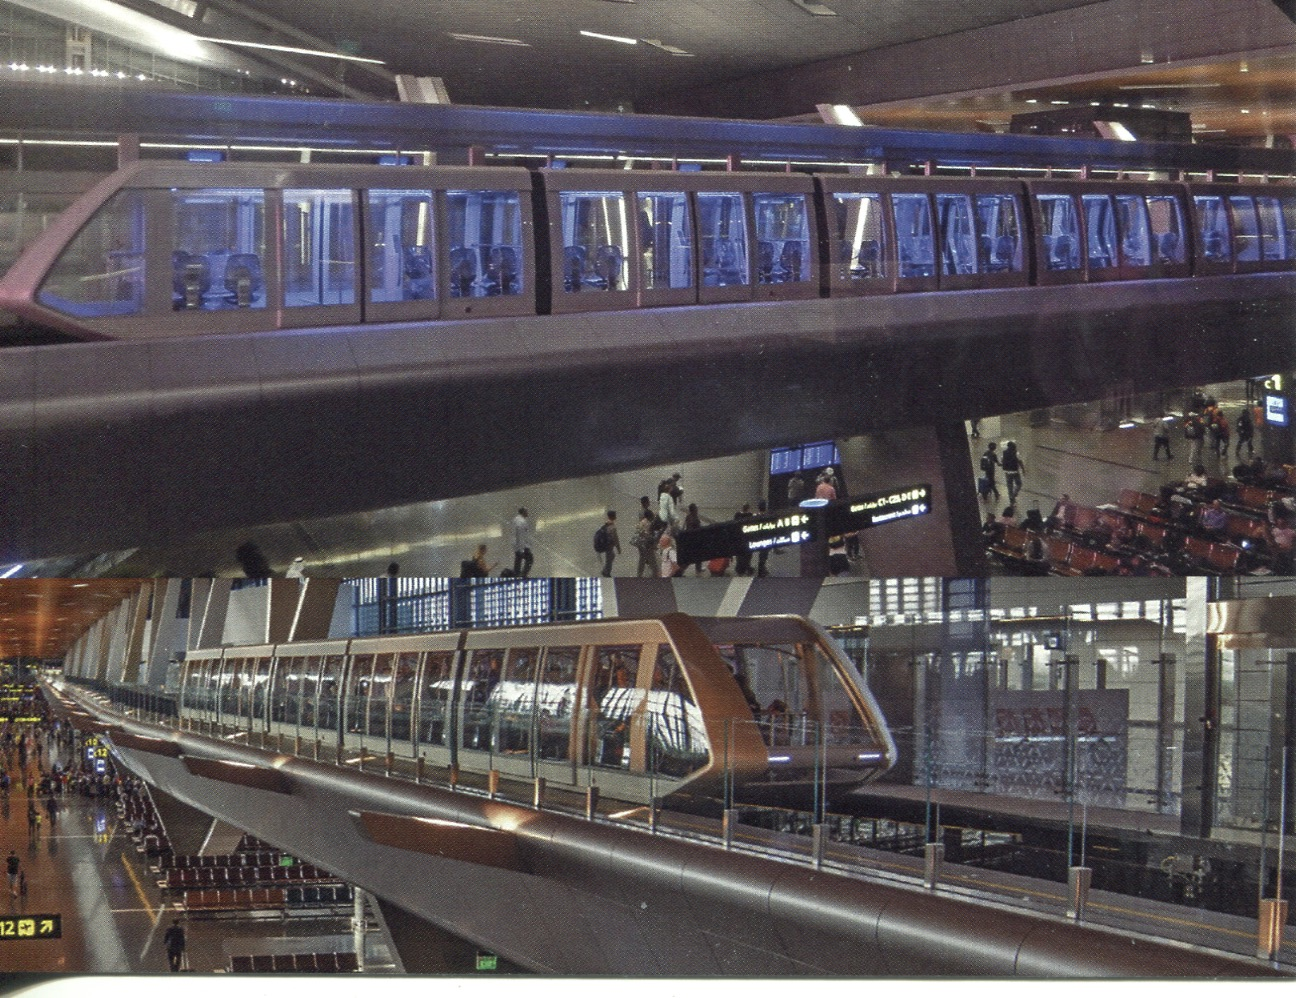 Hamad International Airport Monorail (Doha, Qatar)